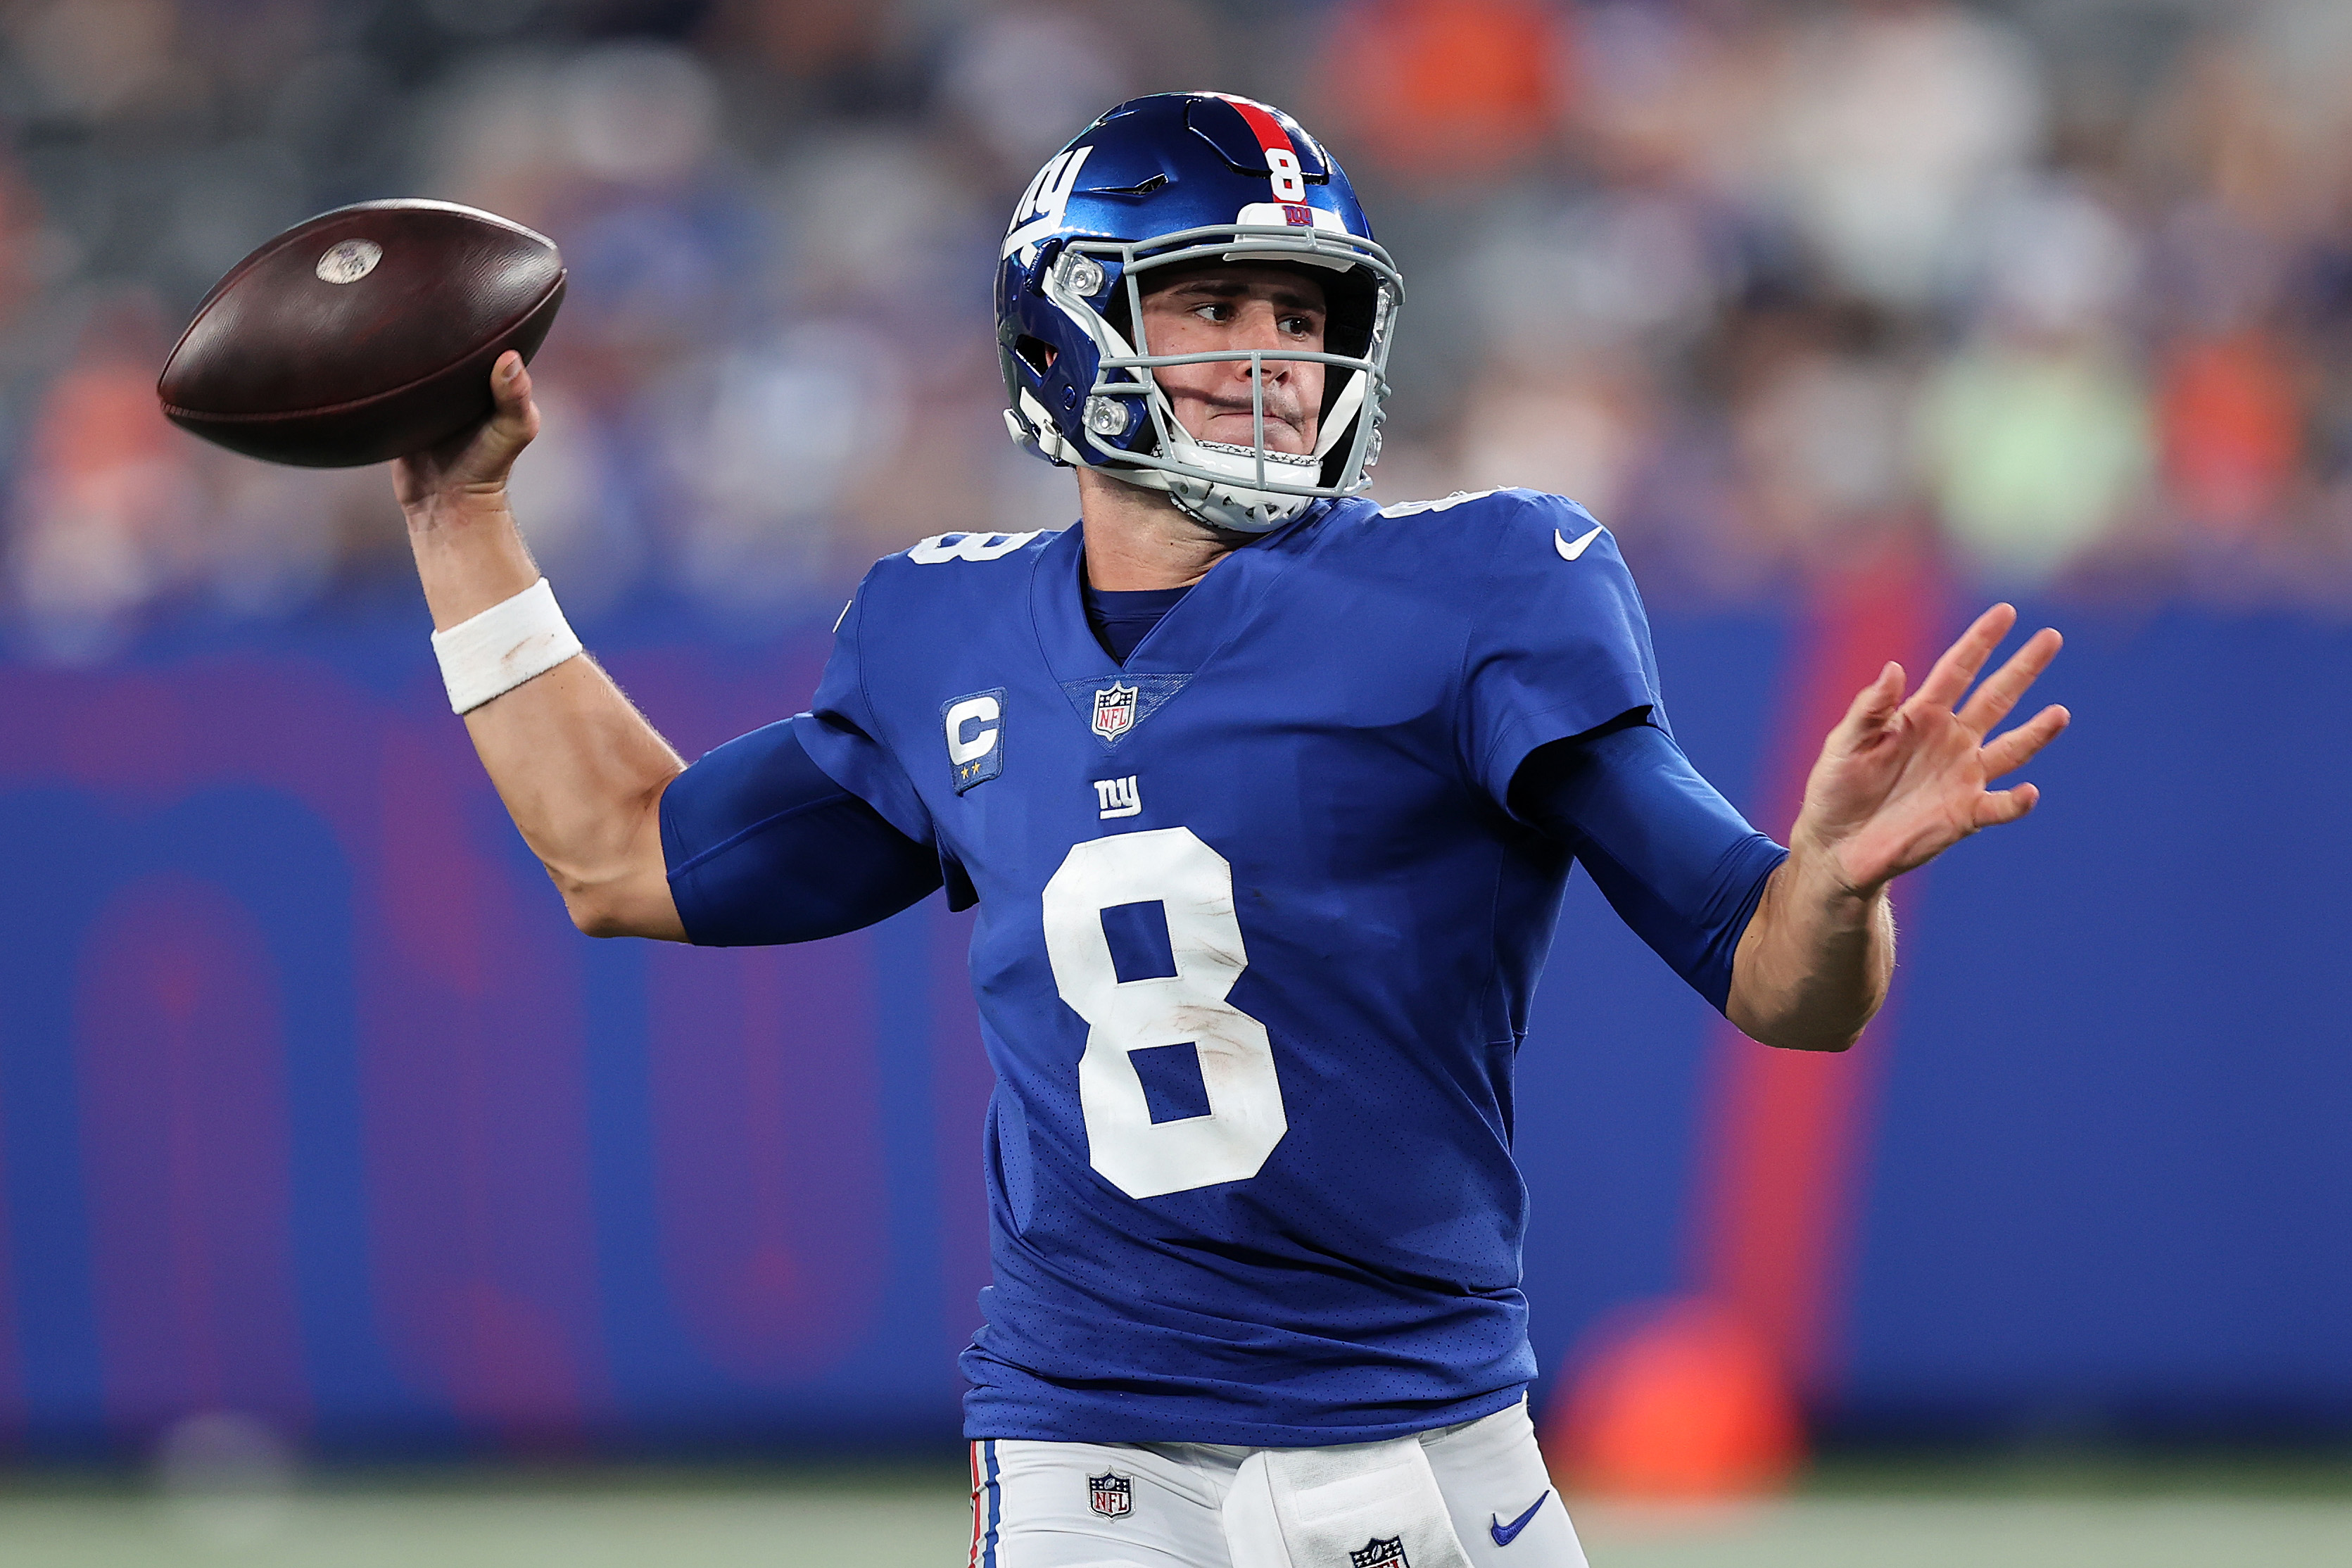 Daniel Jones #8 of the New York Giants throws a pass against the Denver Broncos during the second half at MetLife Stadium on September 12, 2021 in East Rutherford, New Jersey.